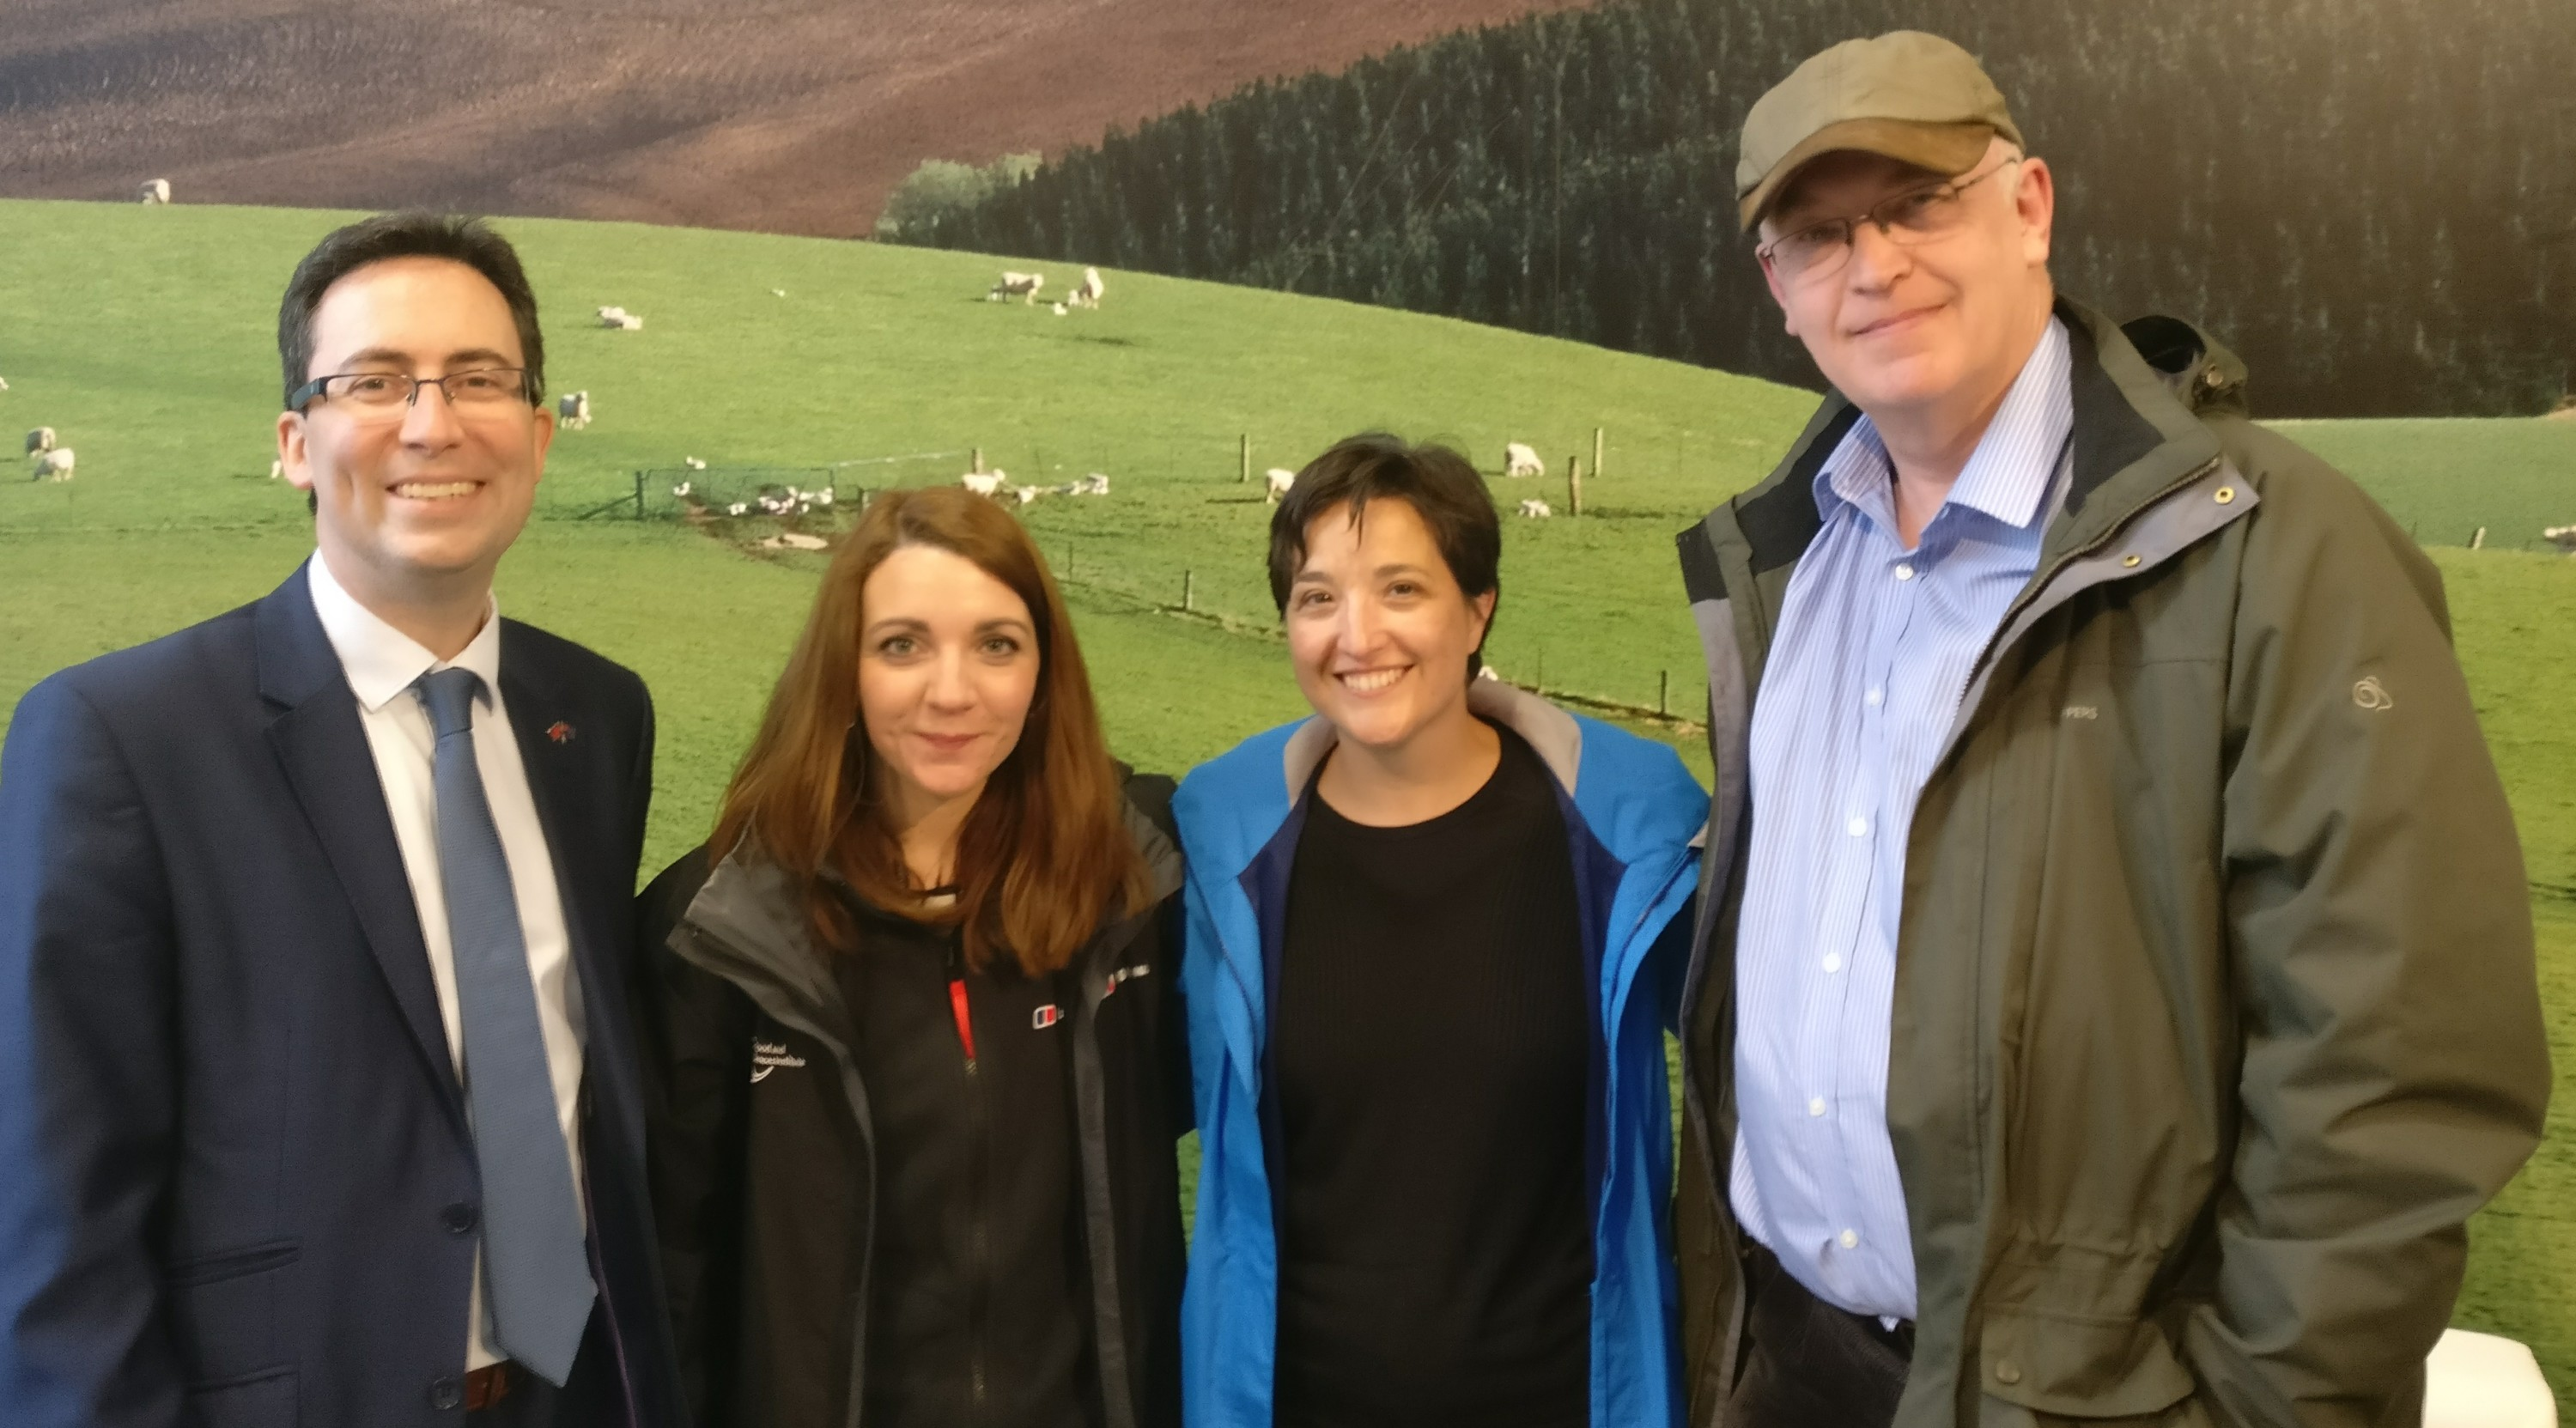 Sally Howlett attends National Fieldays, the largest agricultural event in the Southern hemisphere